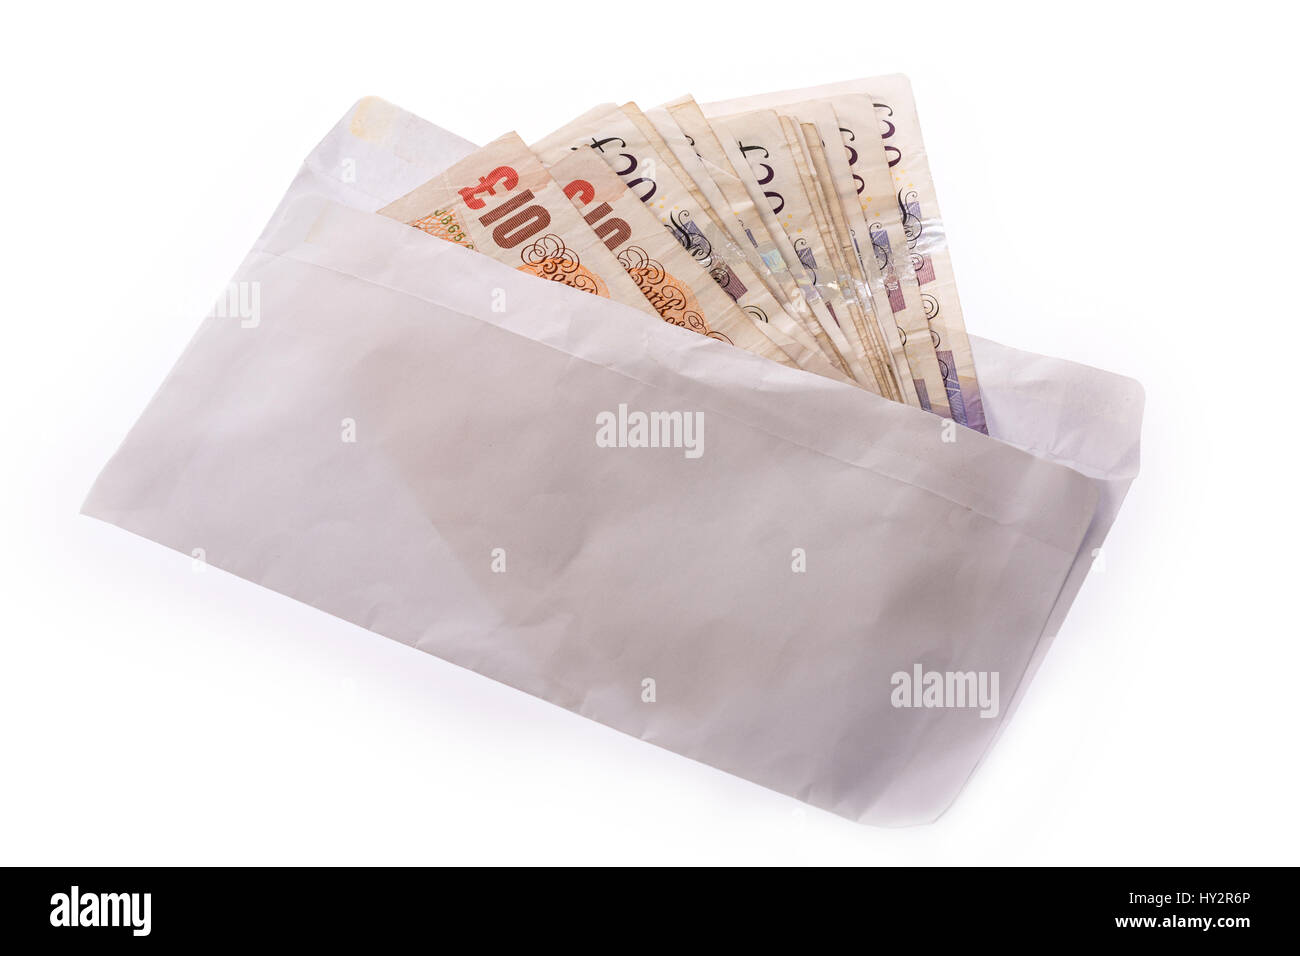 envelope of cash uk pound notesStock Photo